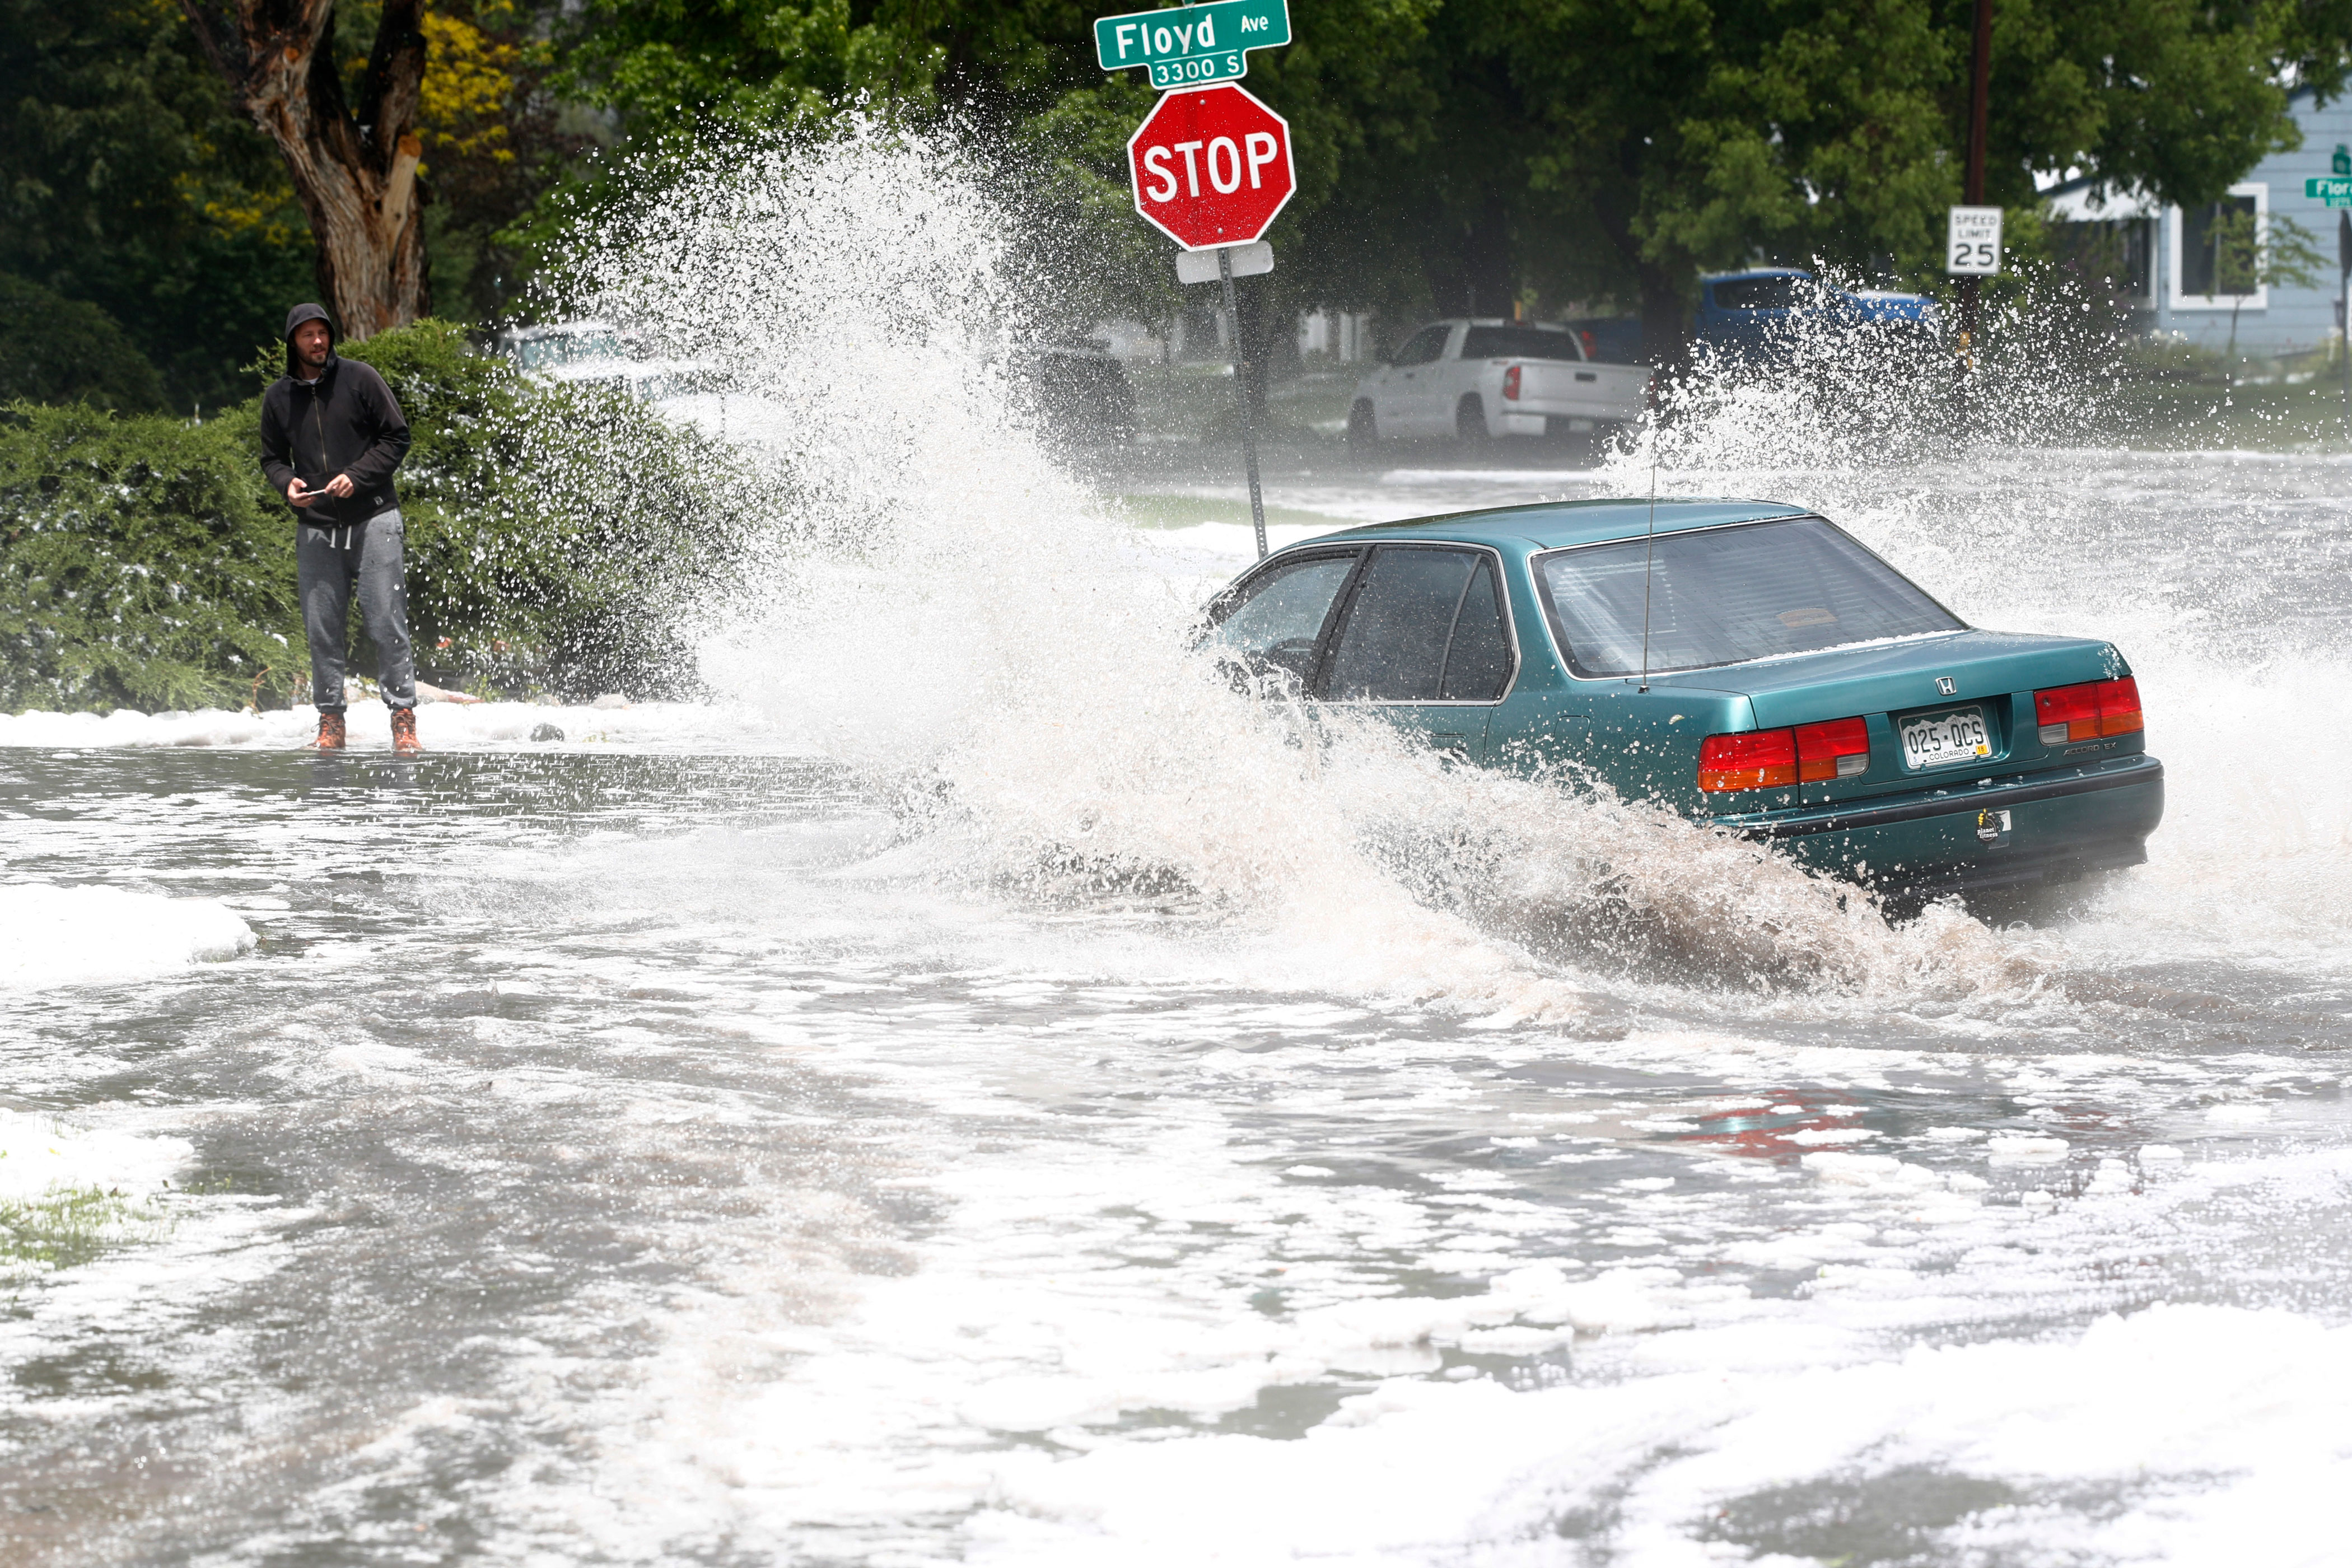 <p>A pedestrian looks on as a motorist guides a car through an intersection swamped by heavy rain and hail in southeast Denver, May 14, 2018, after ahigh-powered storm swept over the area.</p>